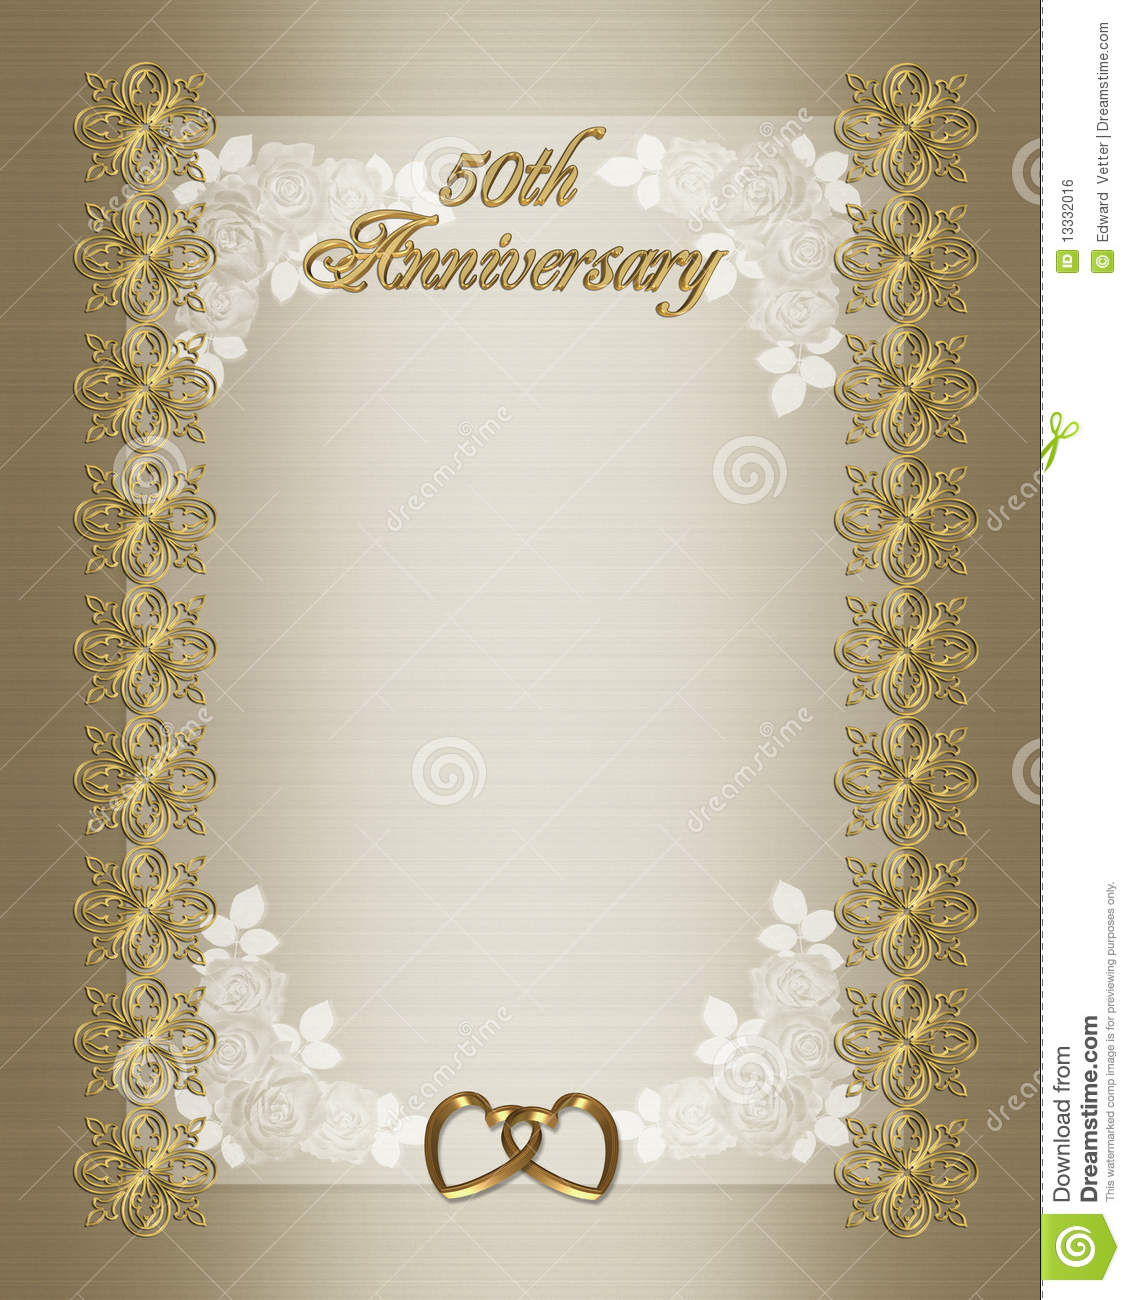 50th Wedding Anniversary Invitation Template  Formal Invitations Template